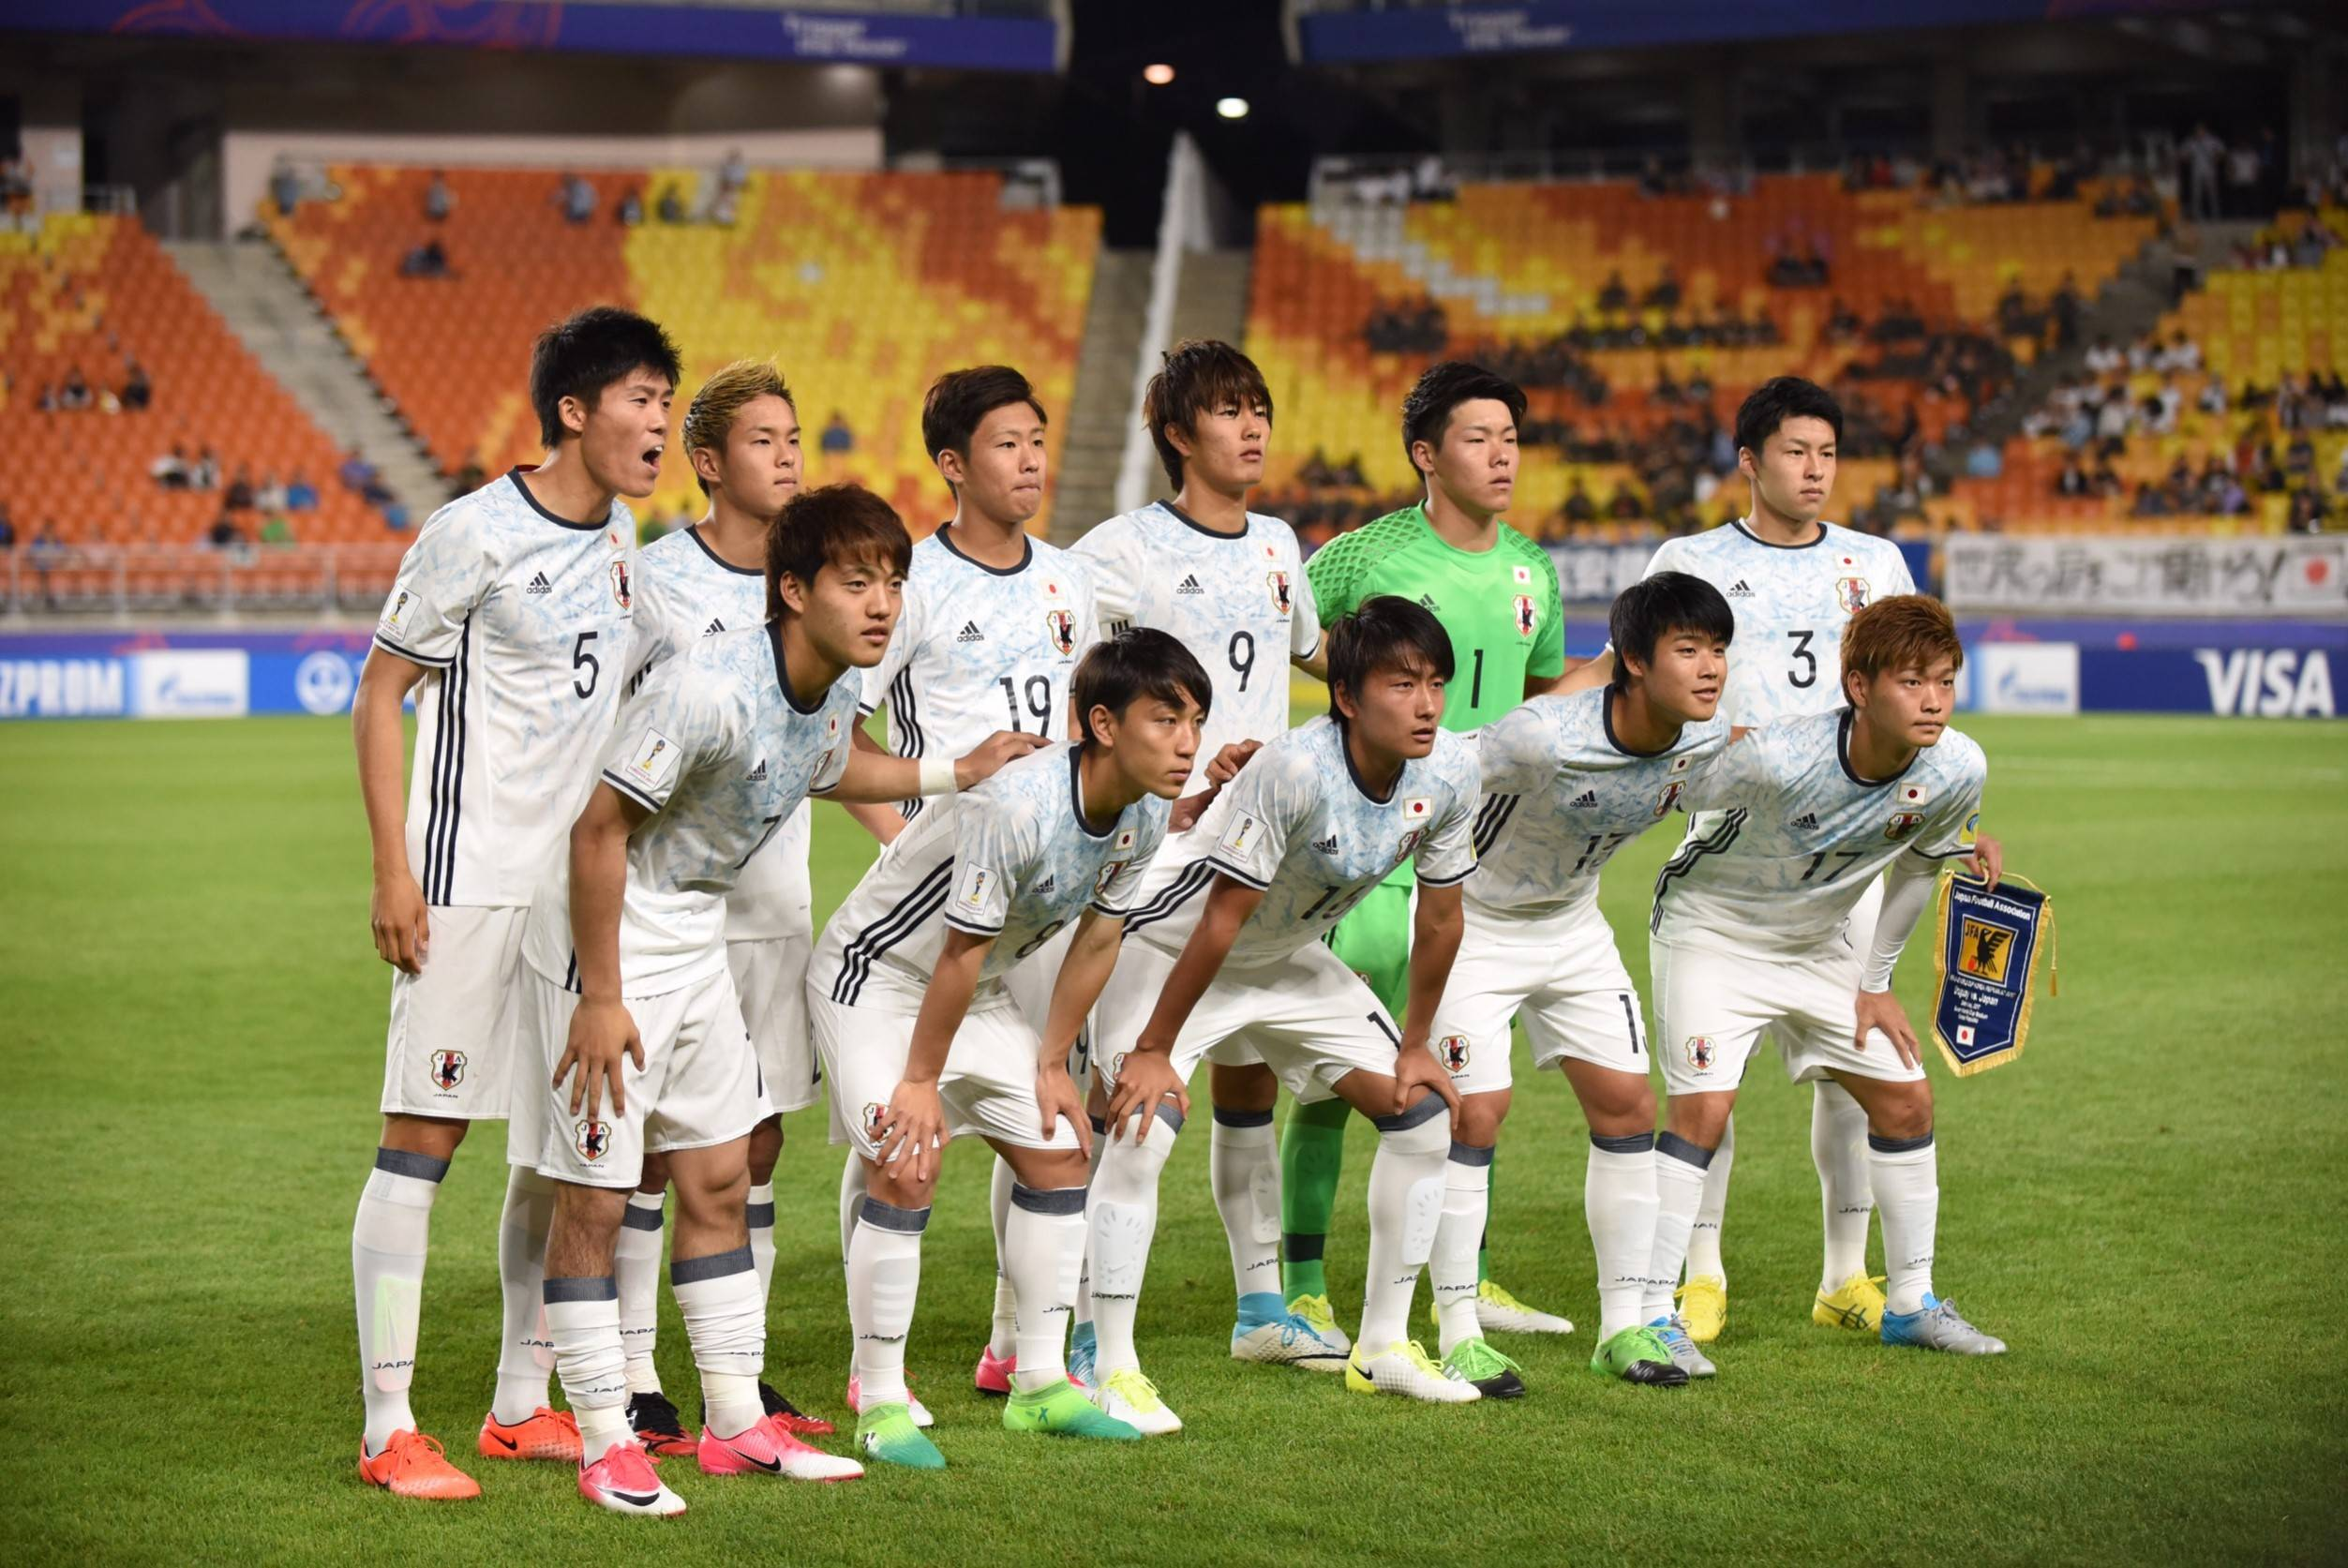 In Photos: Brave Japan U-20 lose against Uruguay U-20